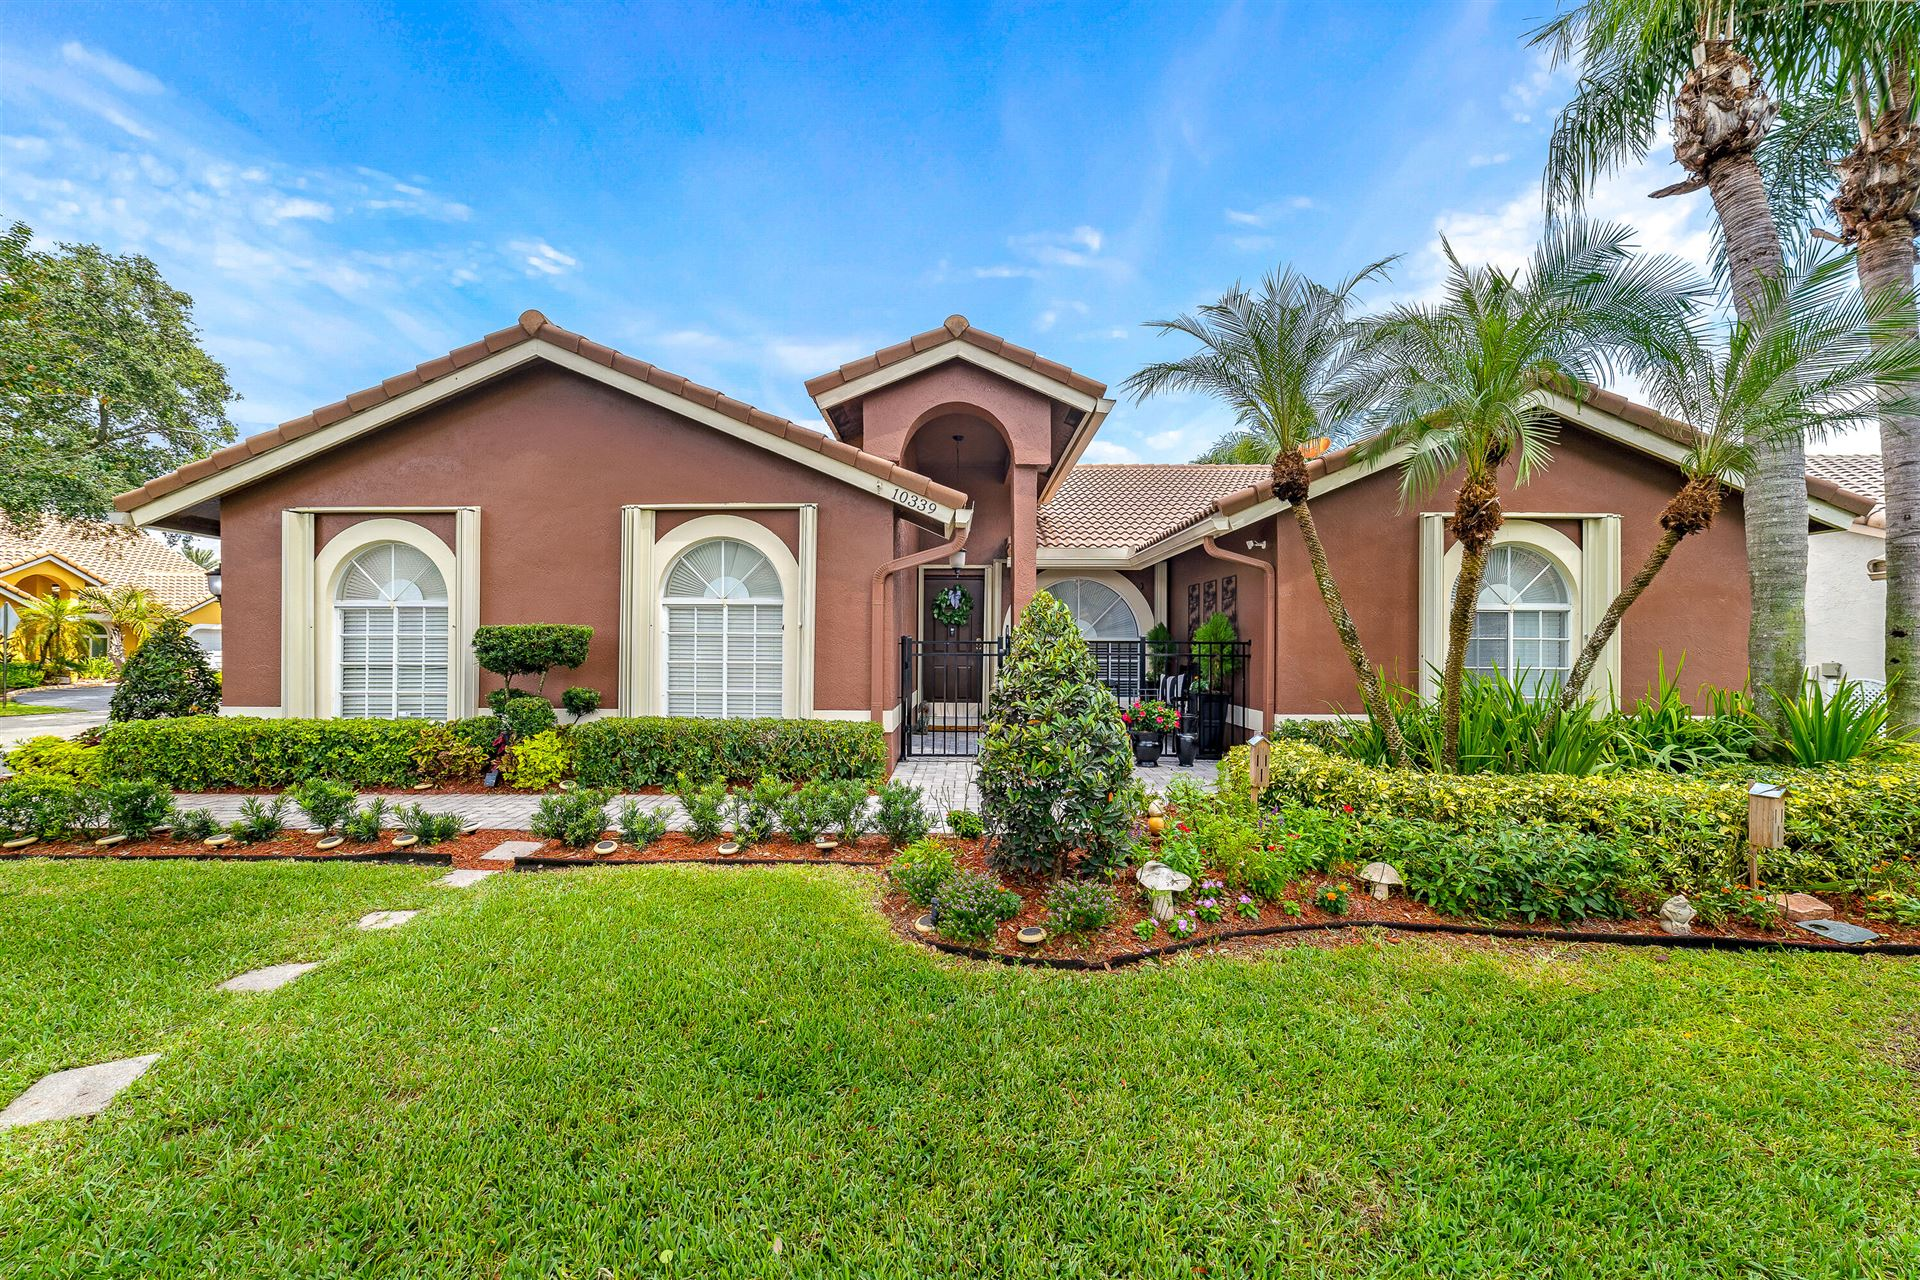 10339 NW 48th Court, Coral Springs, FL 33076 - MLS#: RX-10744276